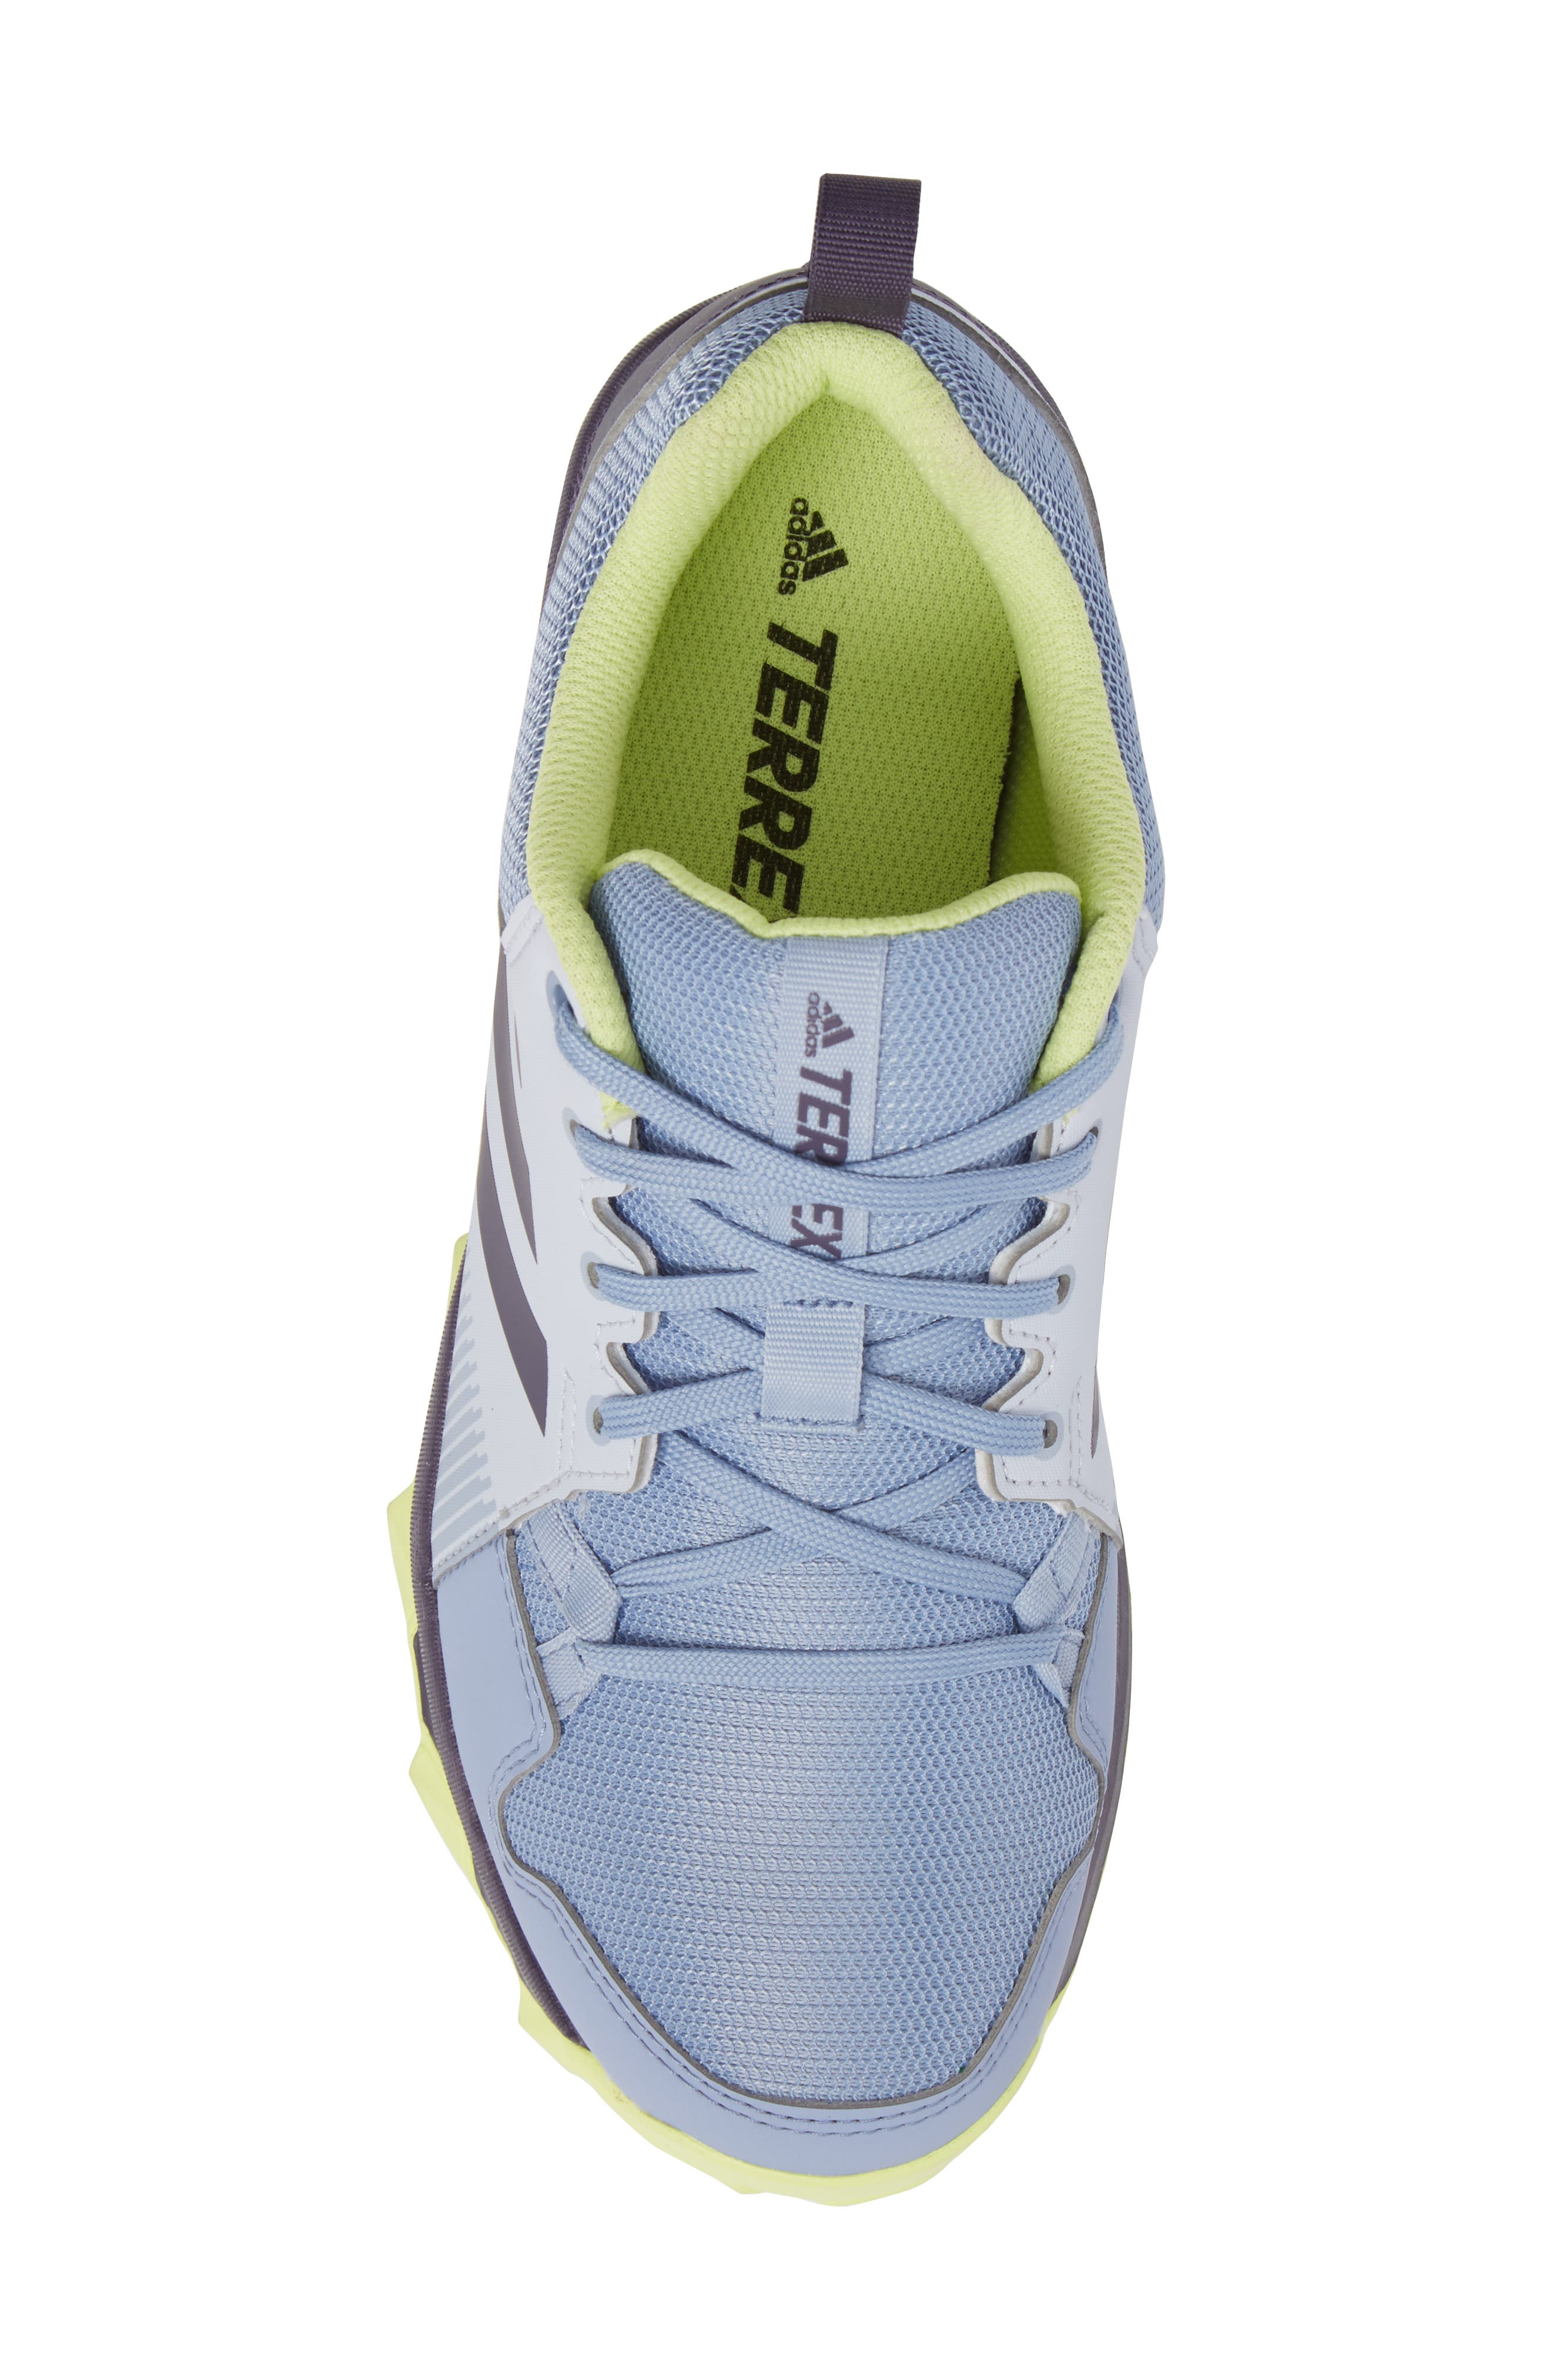 'Tracerocker' Athletic Shoe,                             Alternate thumbnail 5, color,                             Aero Blue/ Purple/ Yellow